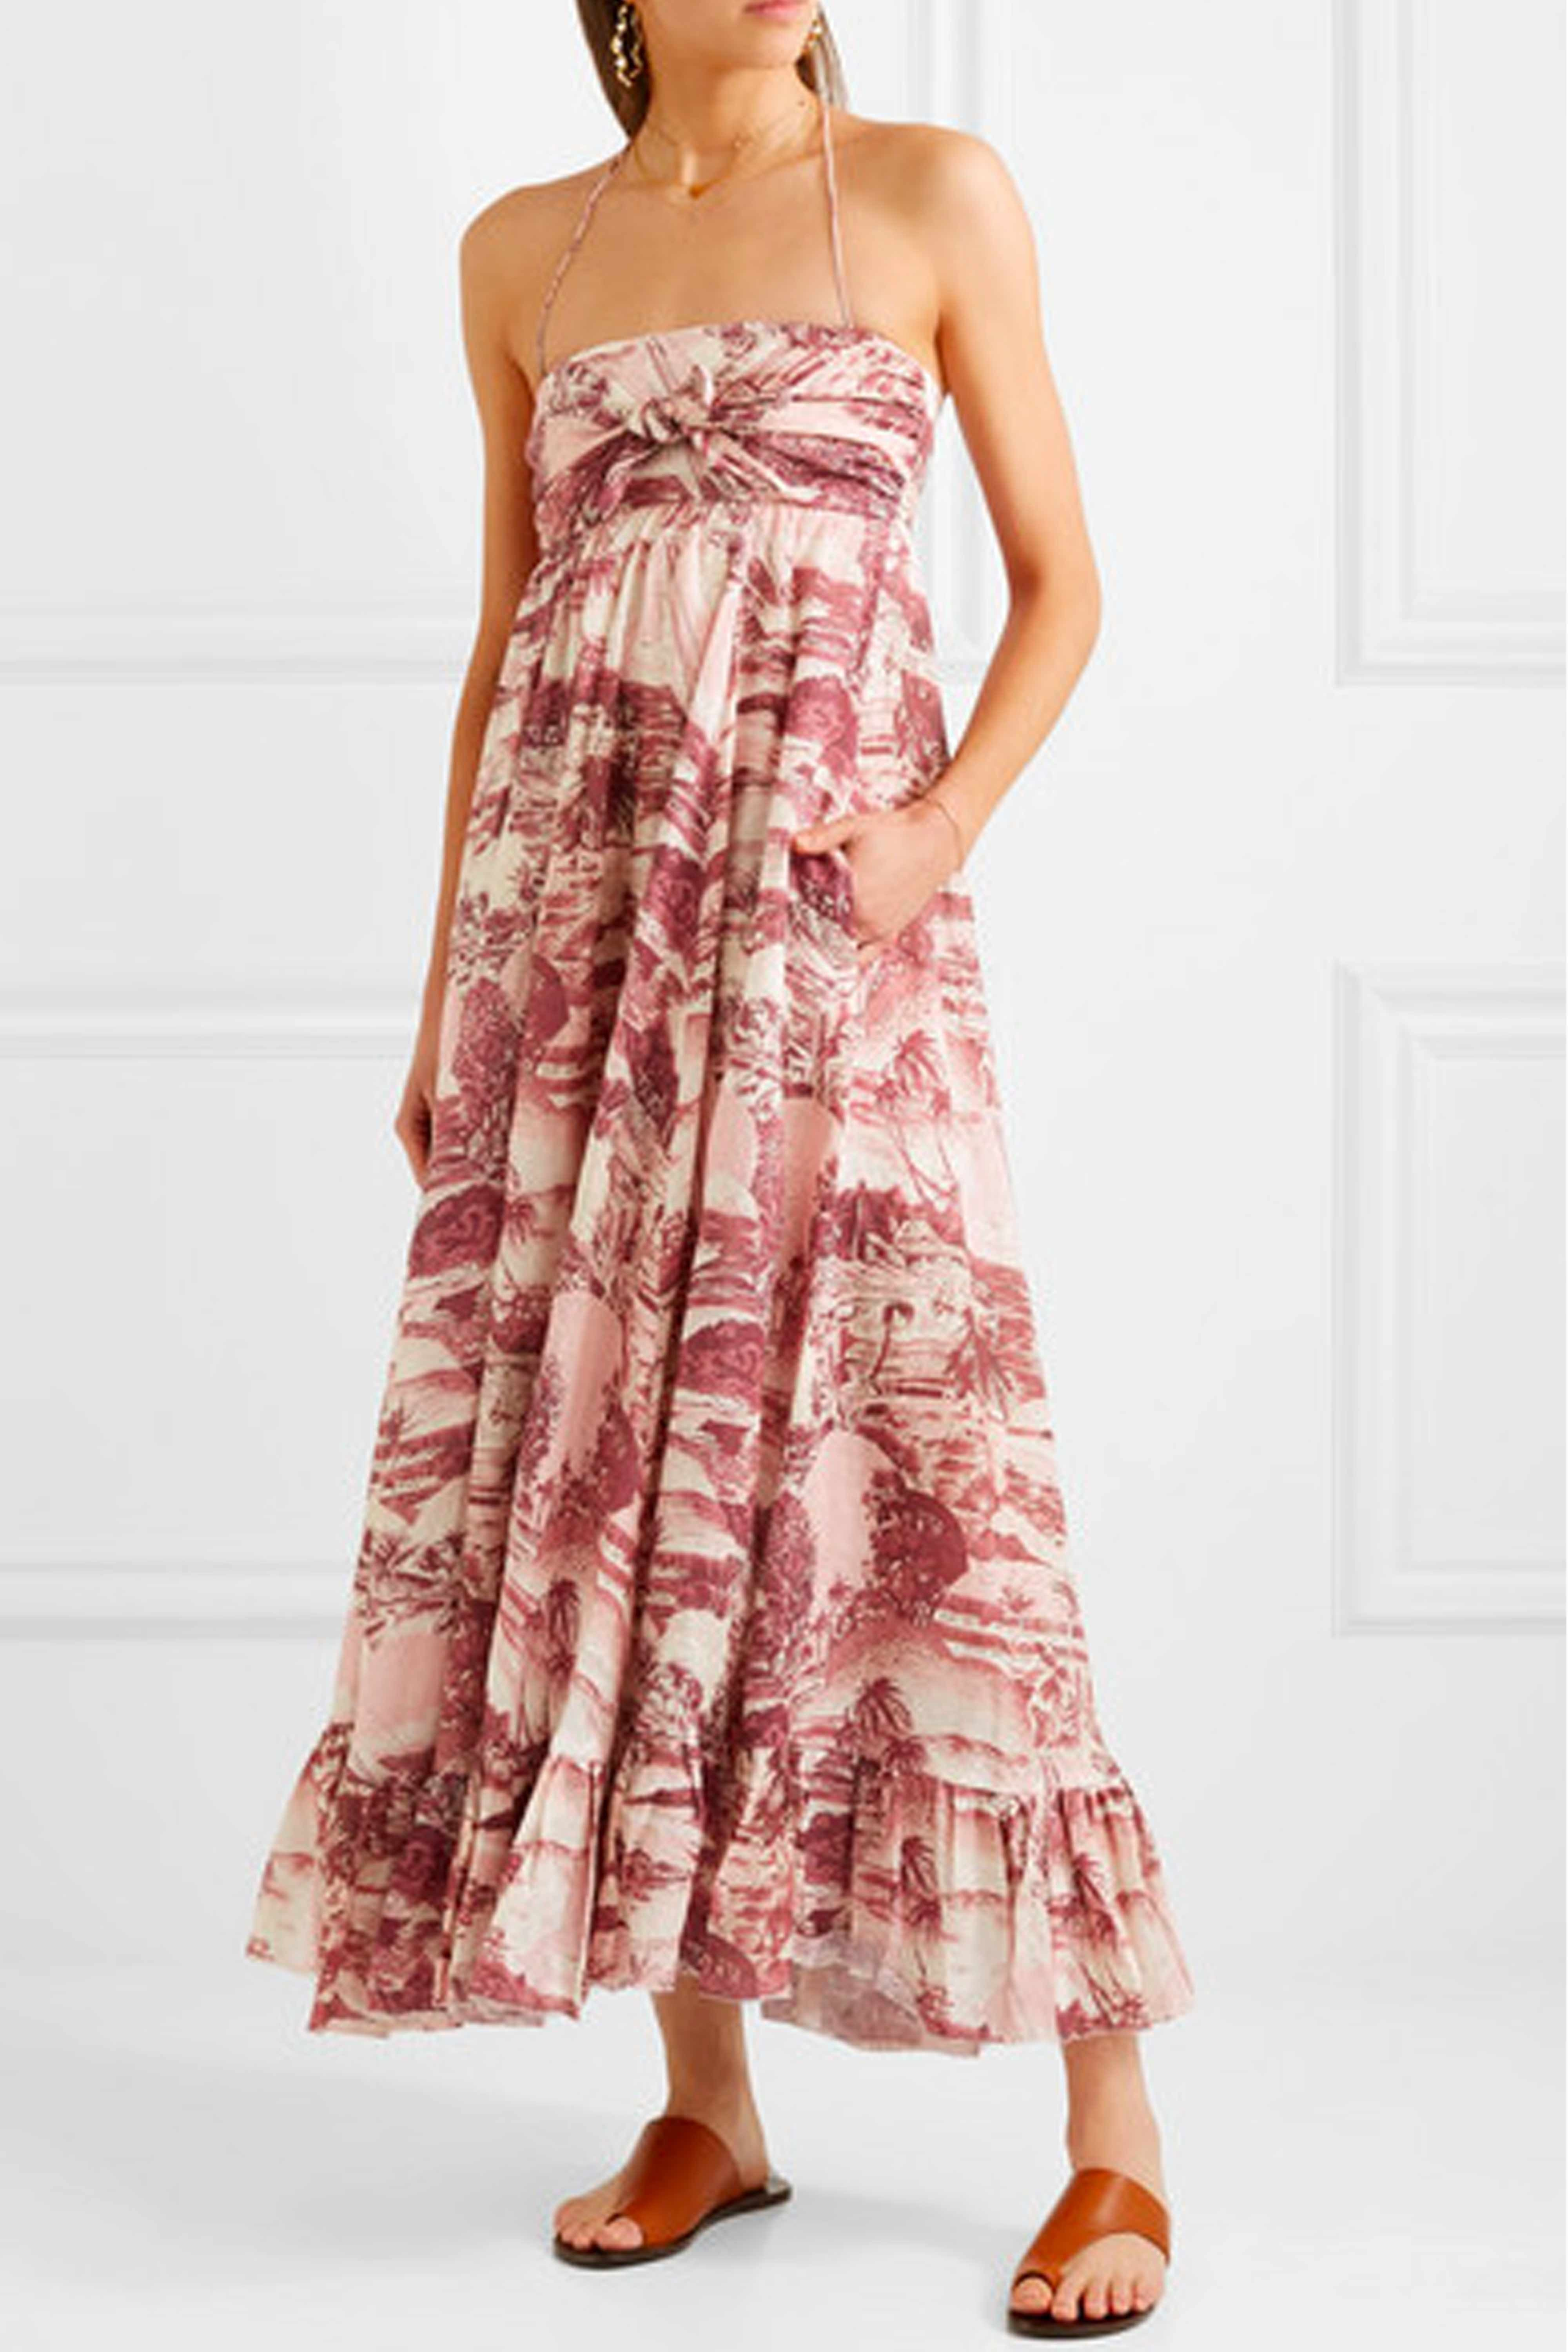 What To Wear To A Summer 2018 Wedding 25 Stylish Summer Wedding